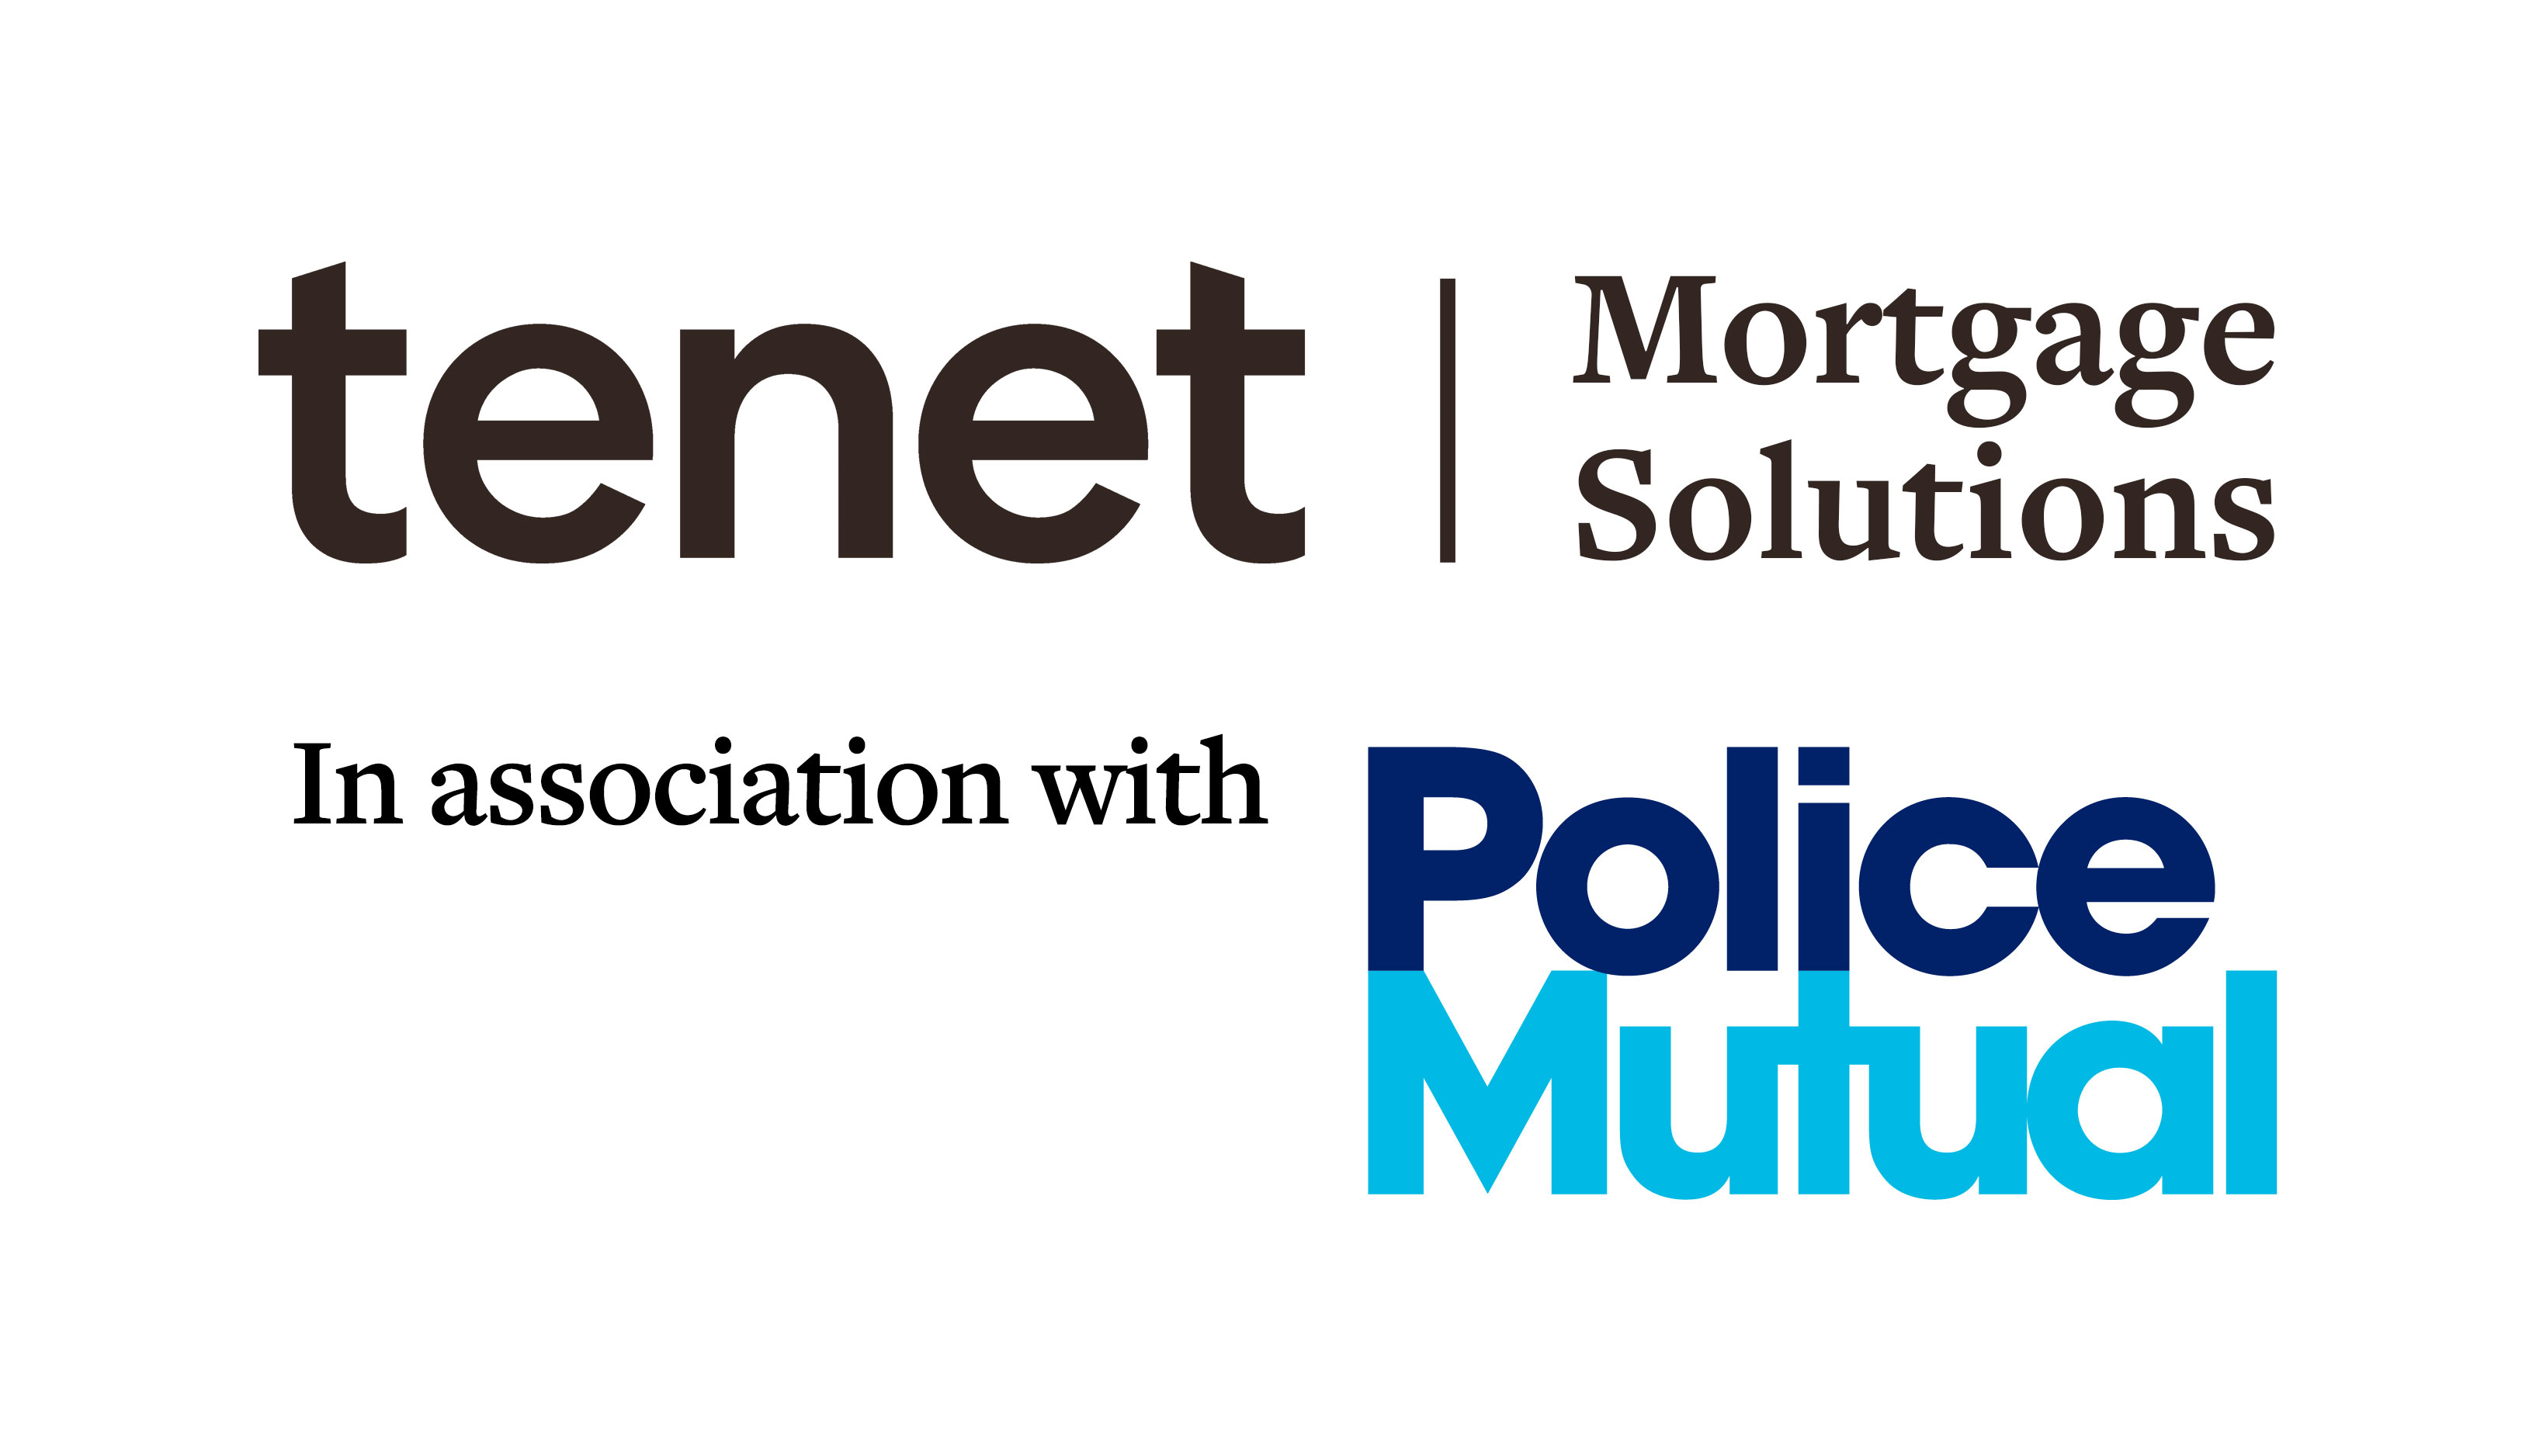 tenet Mortgage Solutions